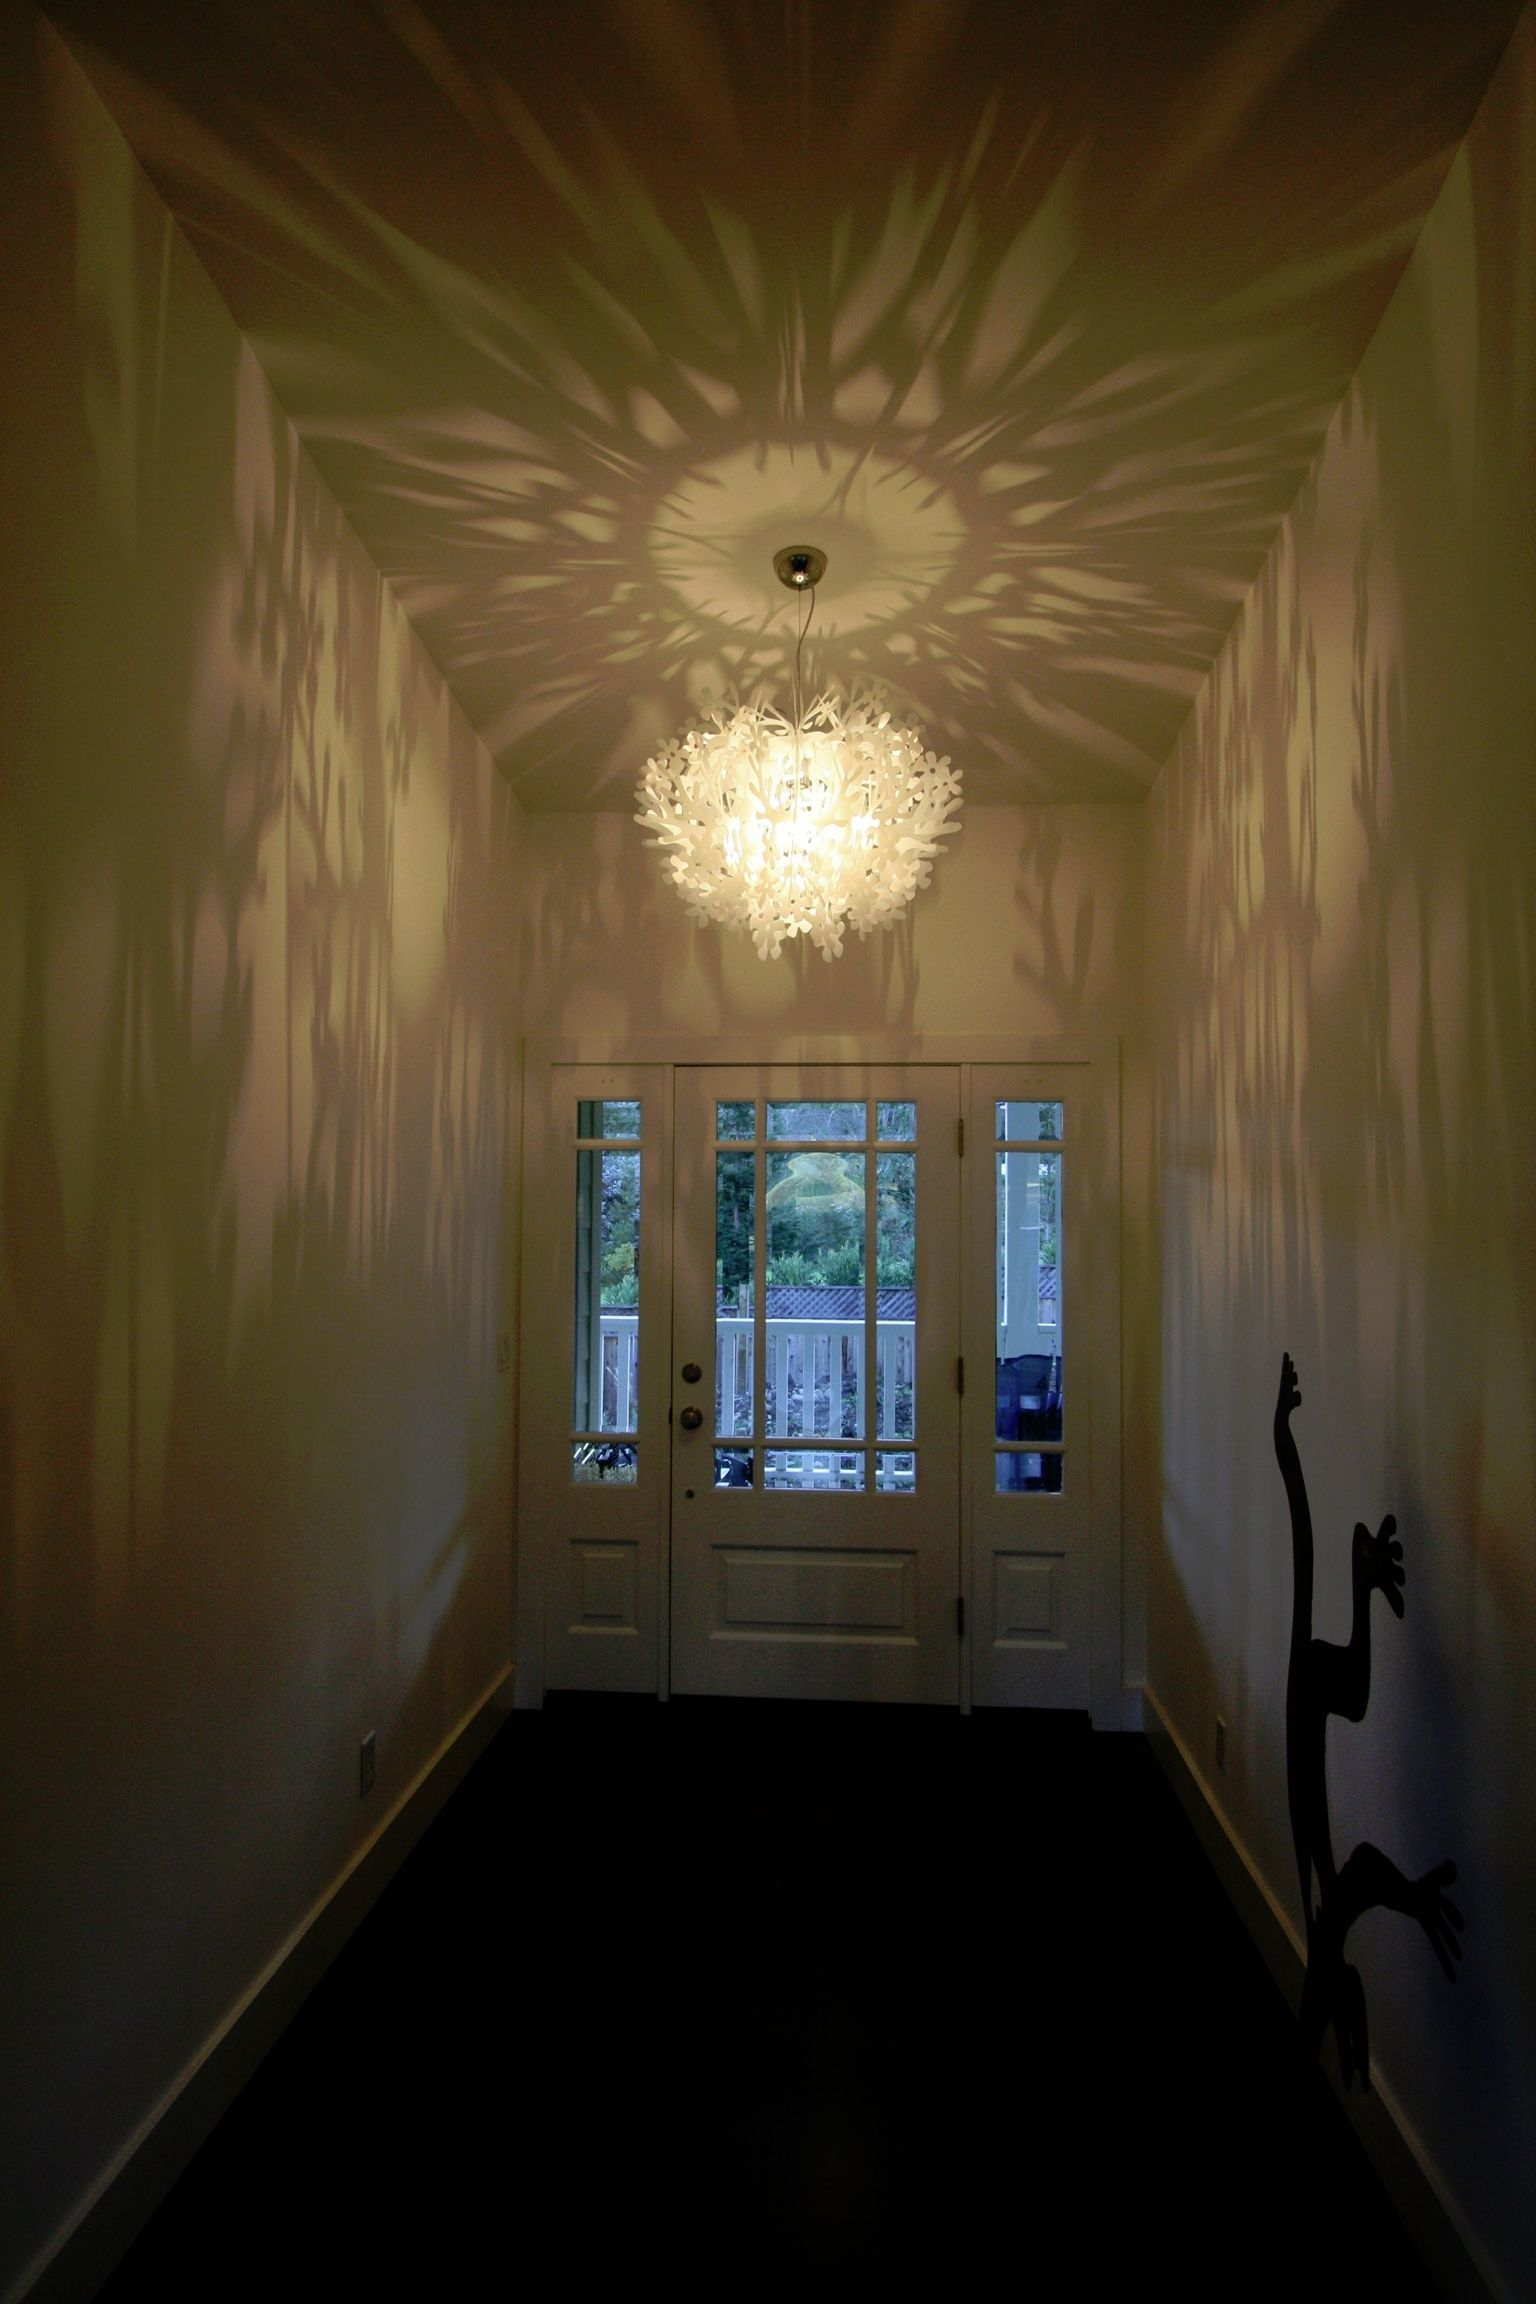 Pin by Lunaria inc on Lighting installations | Pinterest